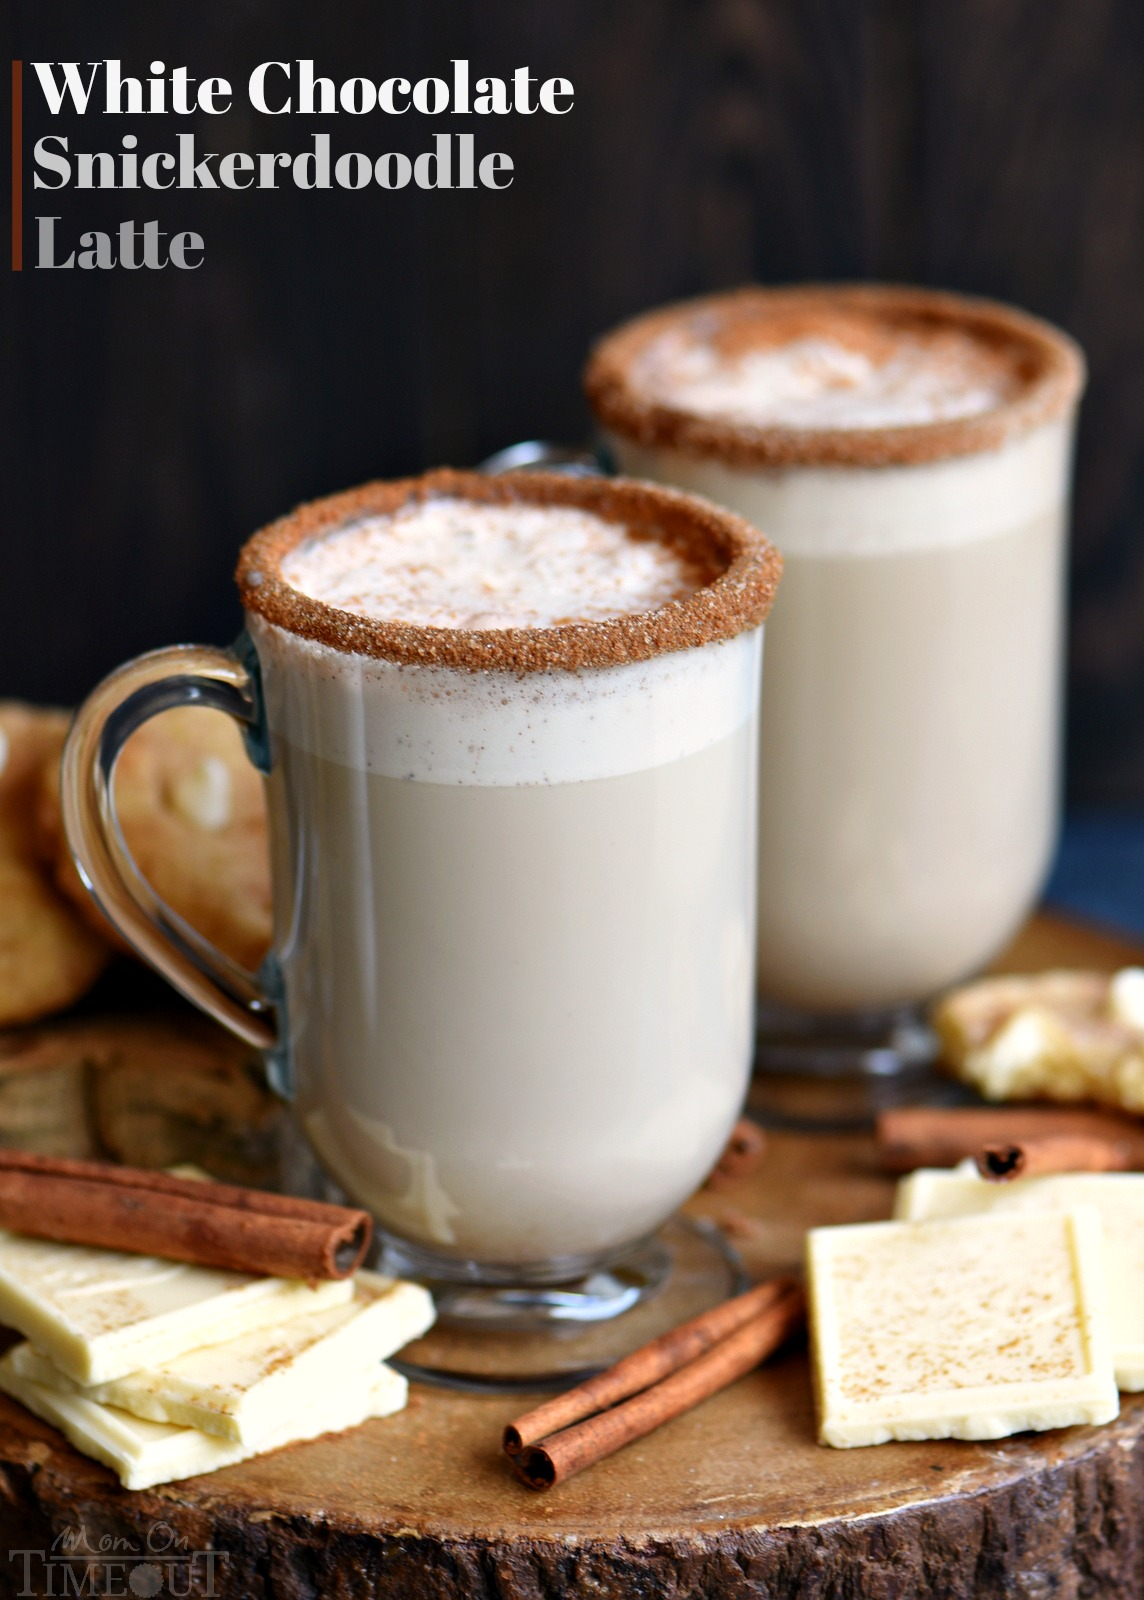 White Chocolate Snickerdoodle Latte